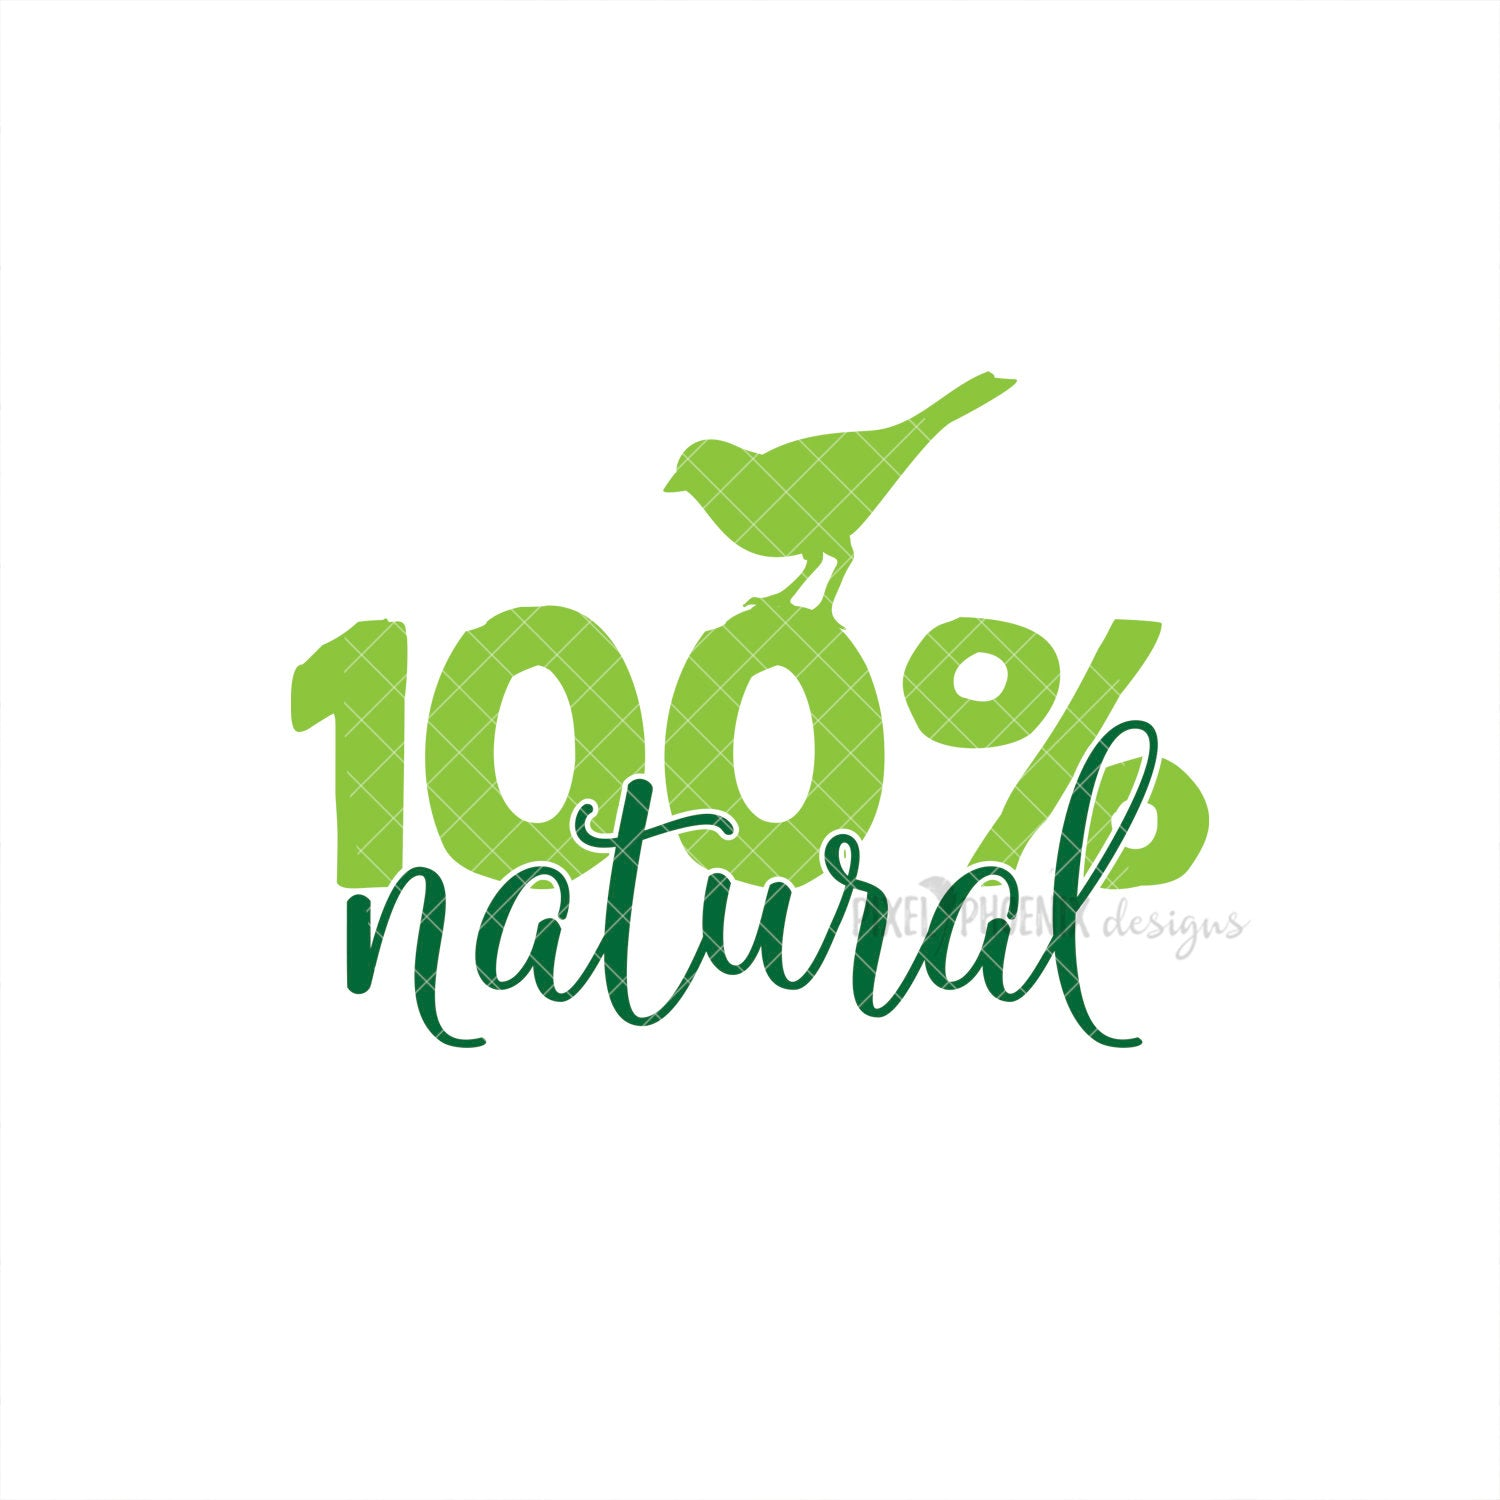 100% Natural SVG, Natural cut file, Natural Beauty, Craft SVG, small shop SVG, vegan products, Cricut, vinyl template, instant download